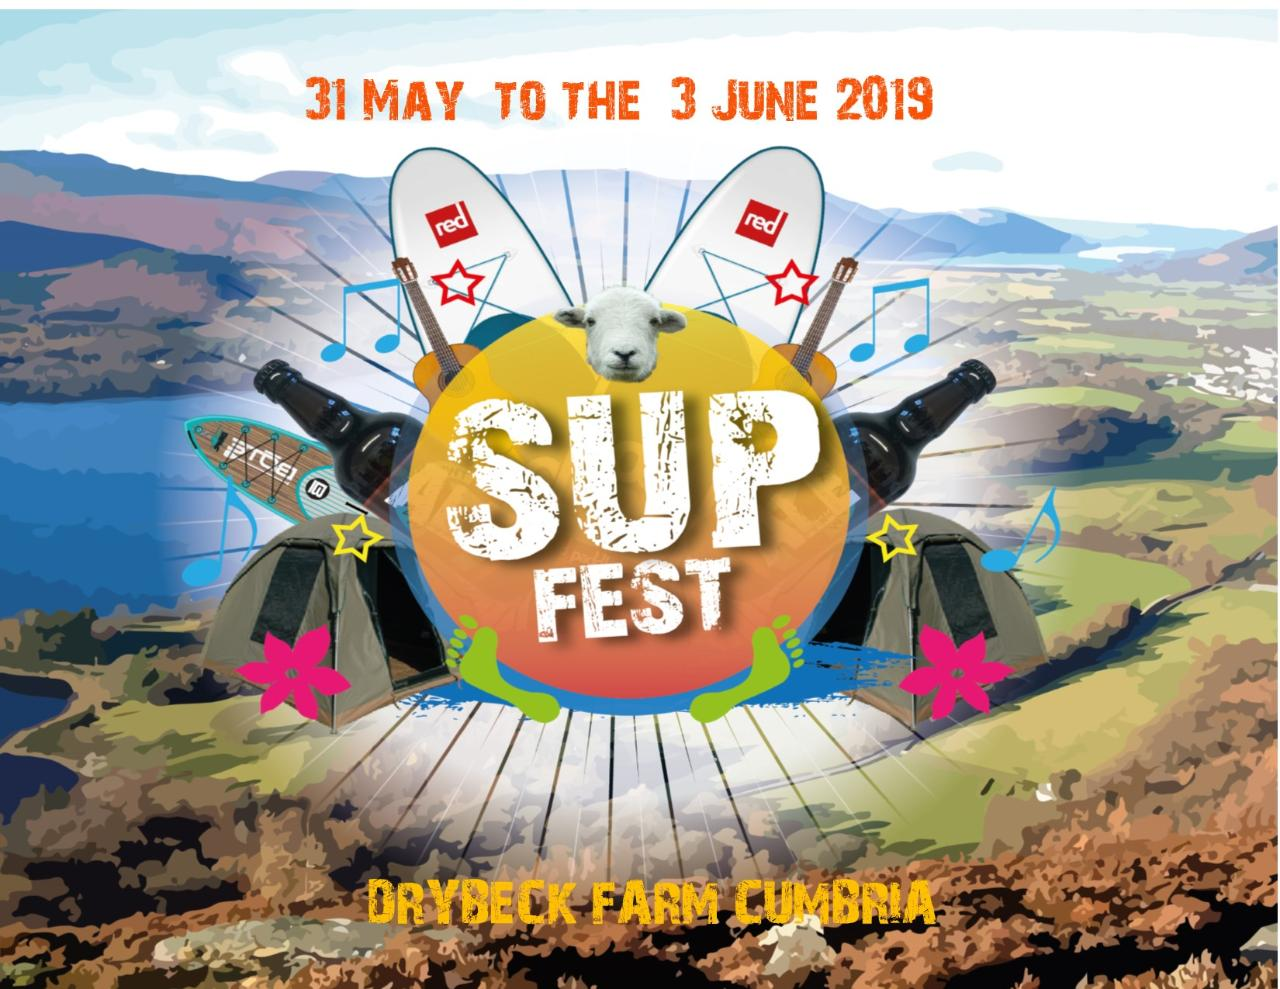 SUPFEST 31st May - 3rd June 2019